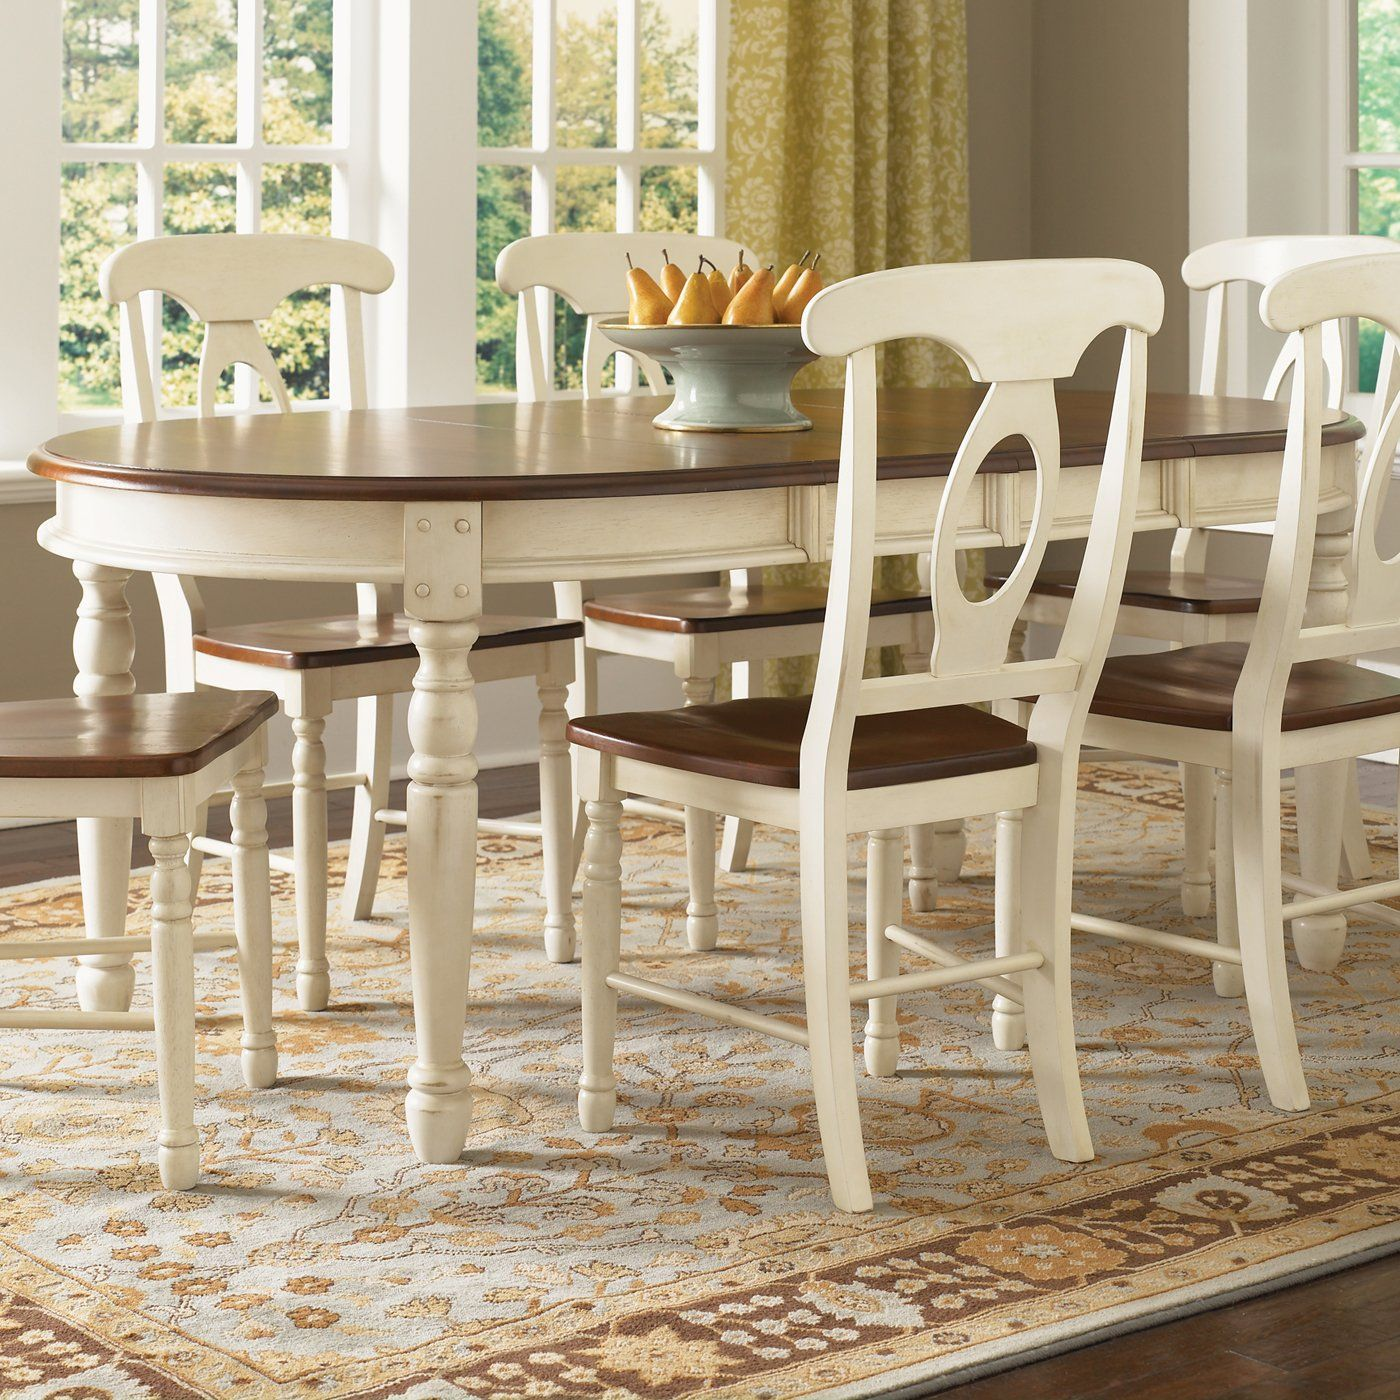 Oval Table This Is What I Want To Do With Our Black